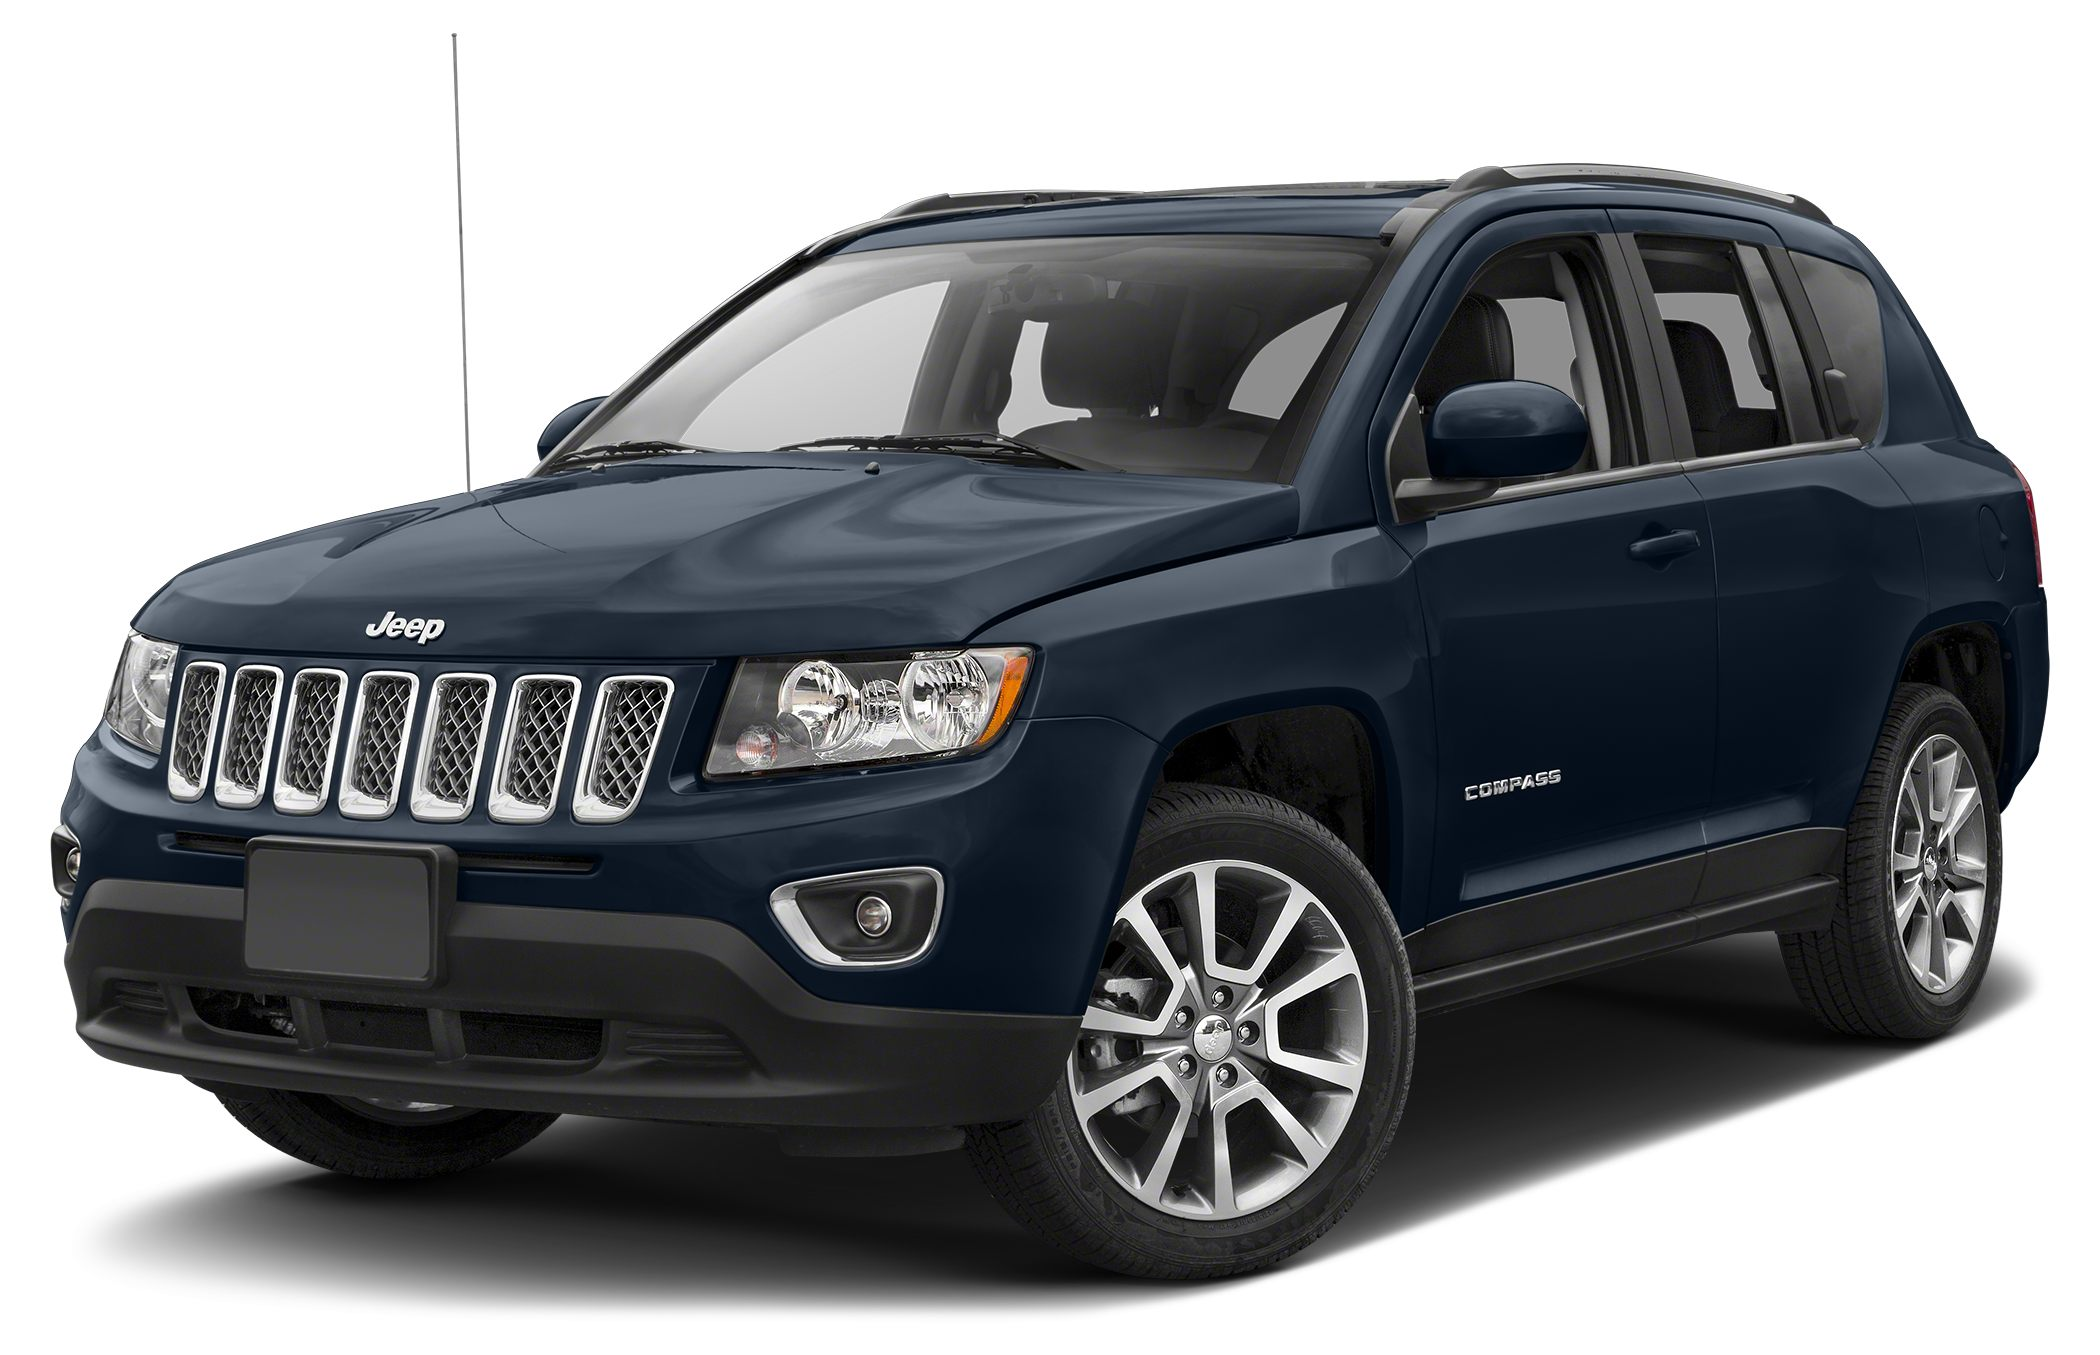 2014 Jeep Compass Latitude WE OFFER FREE LIFETIME INSPECTION Miles 36446Color True Blue Pearlco